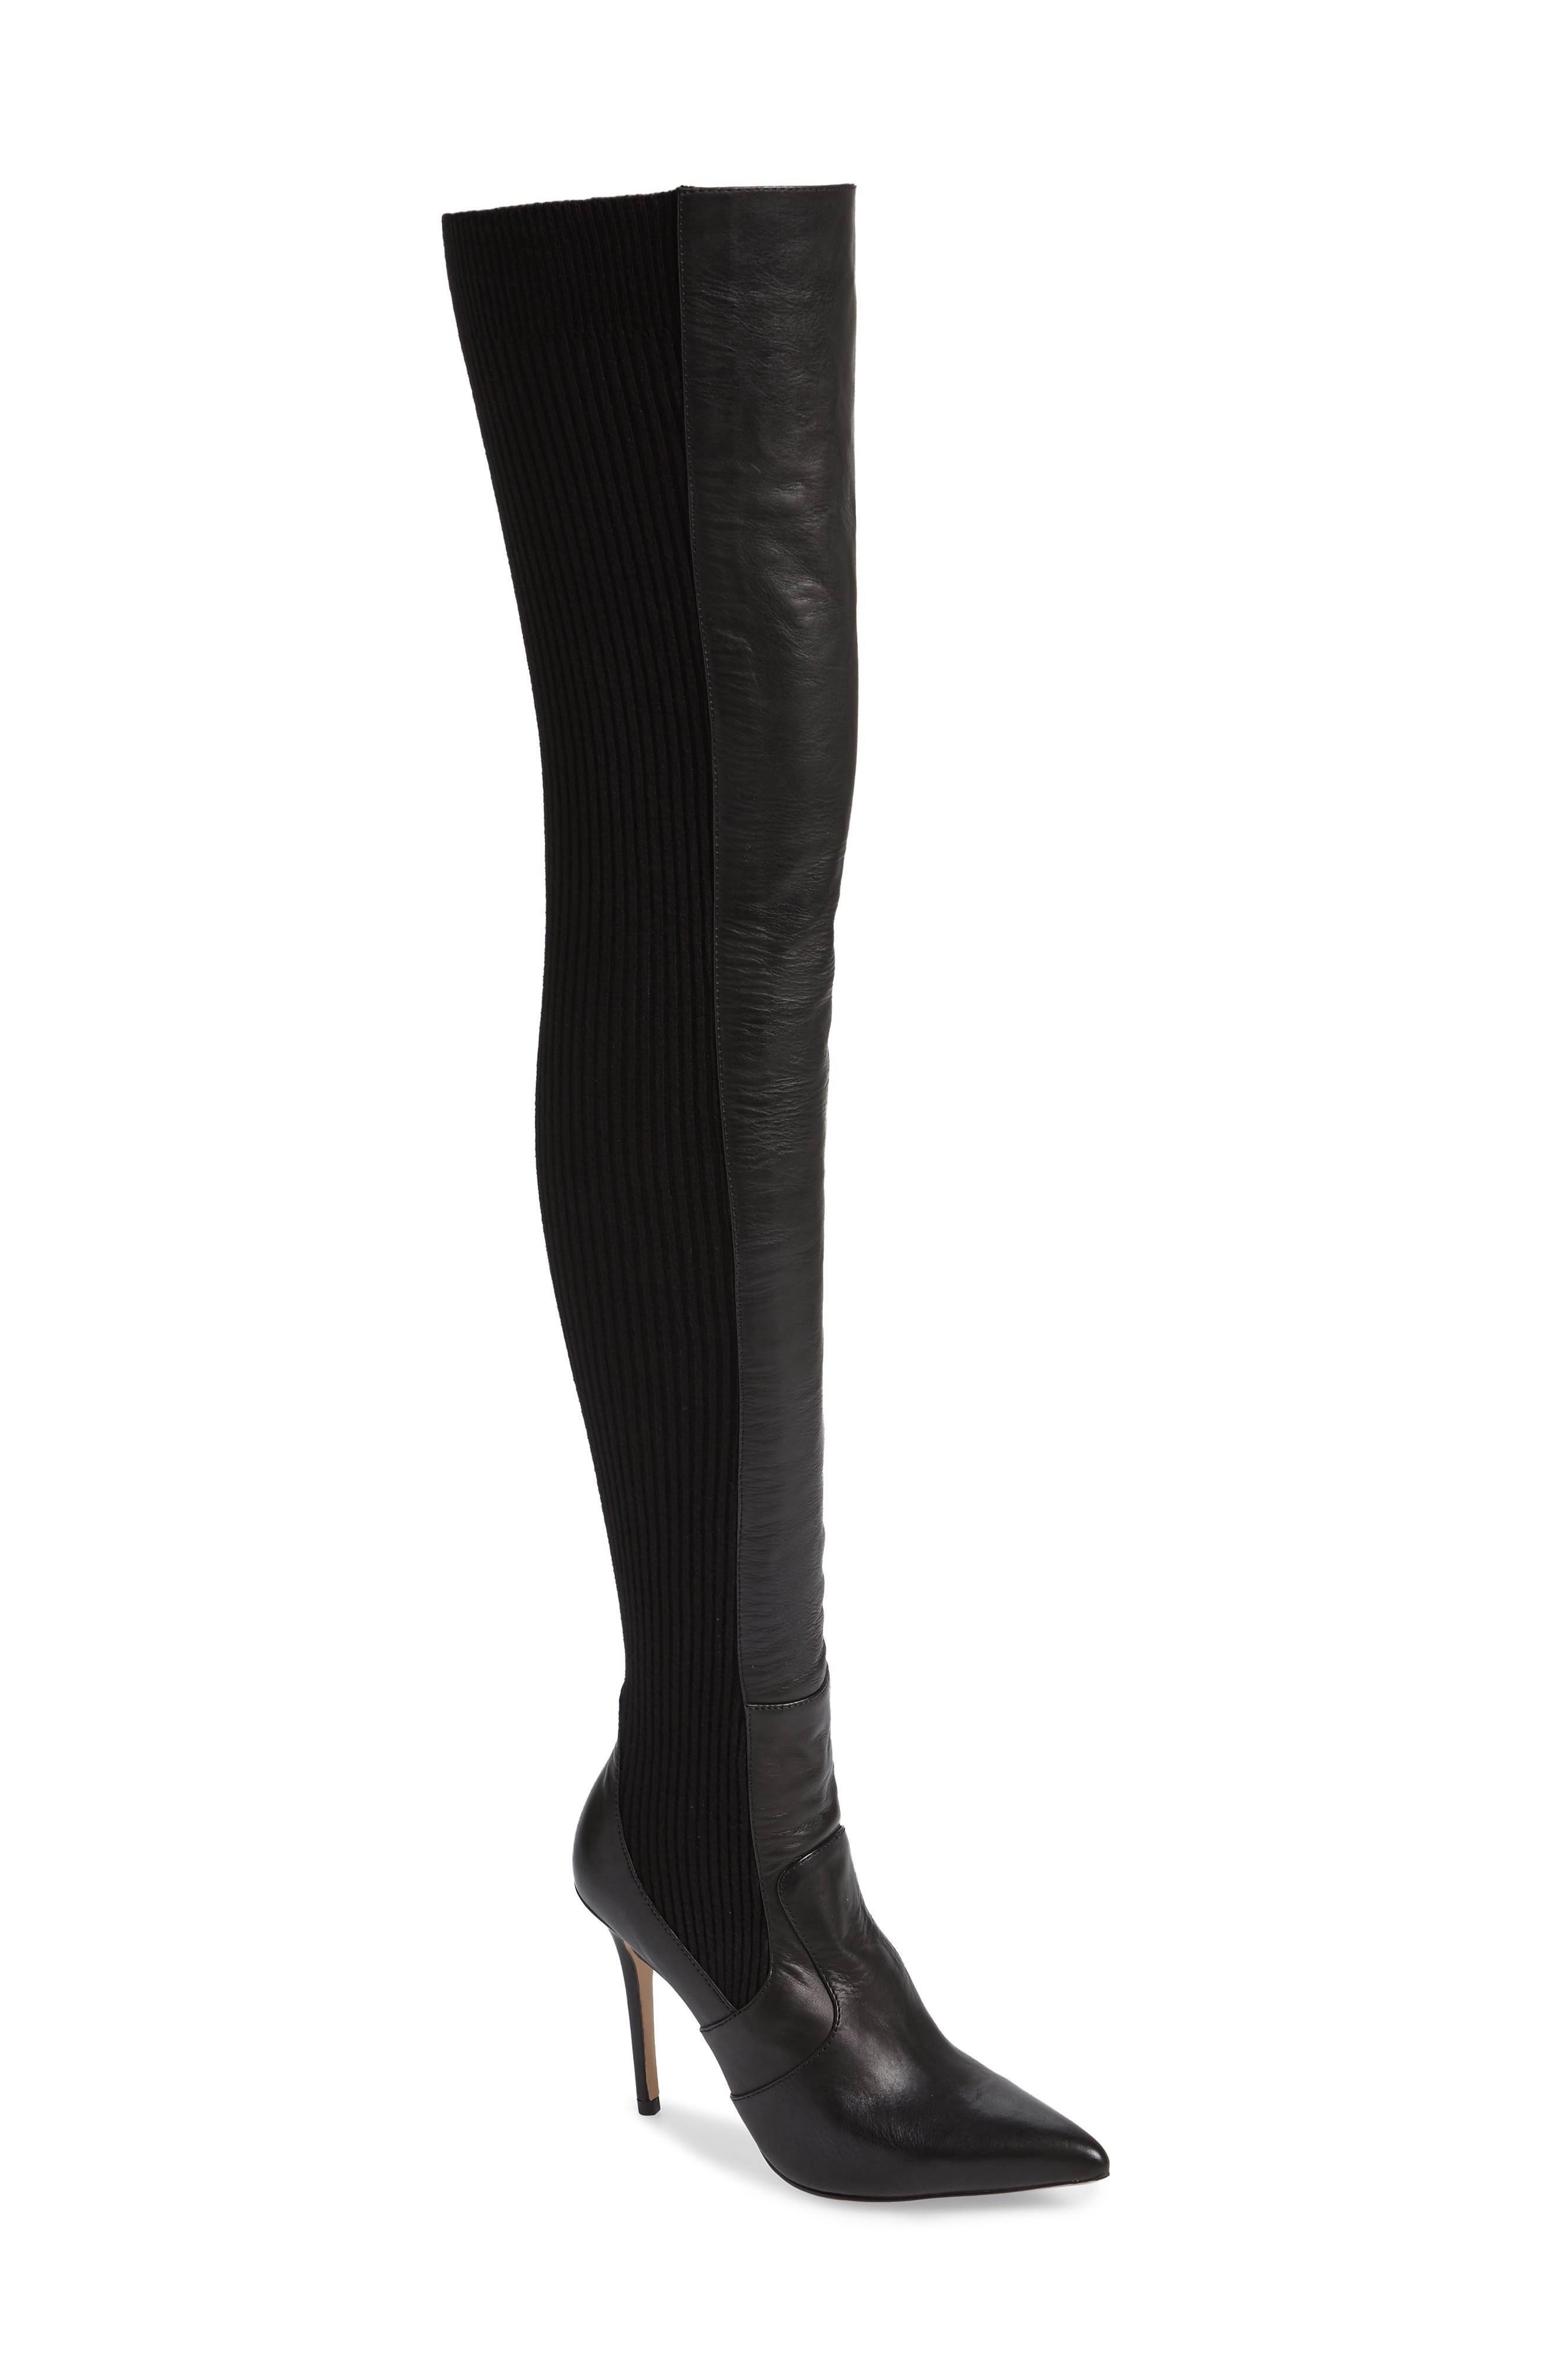 TONY BIANCO Dahlia Over the Knee Boot, Main, color, 001